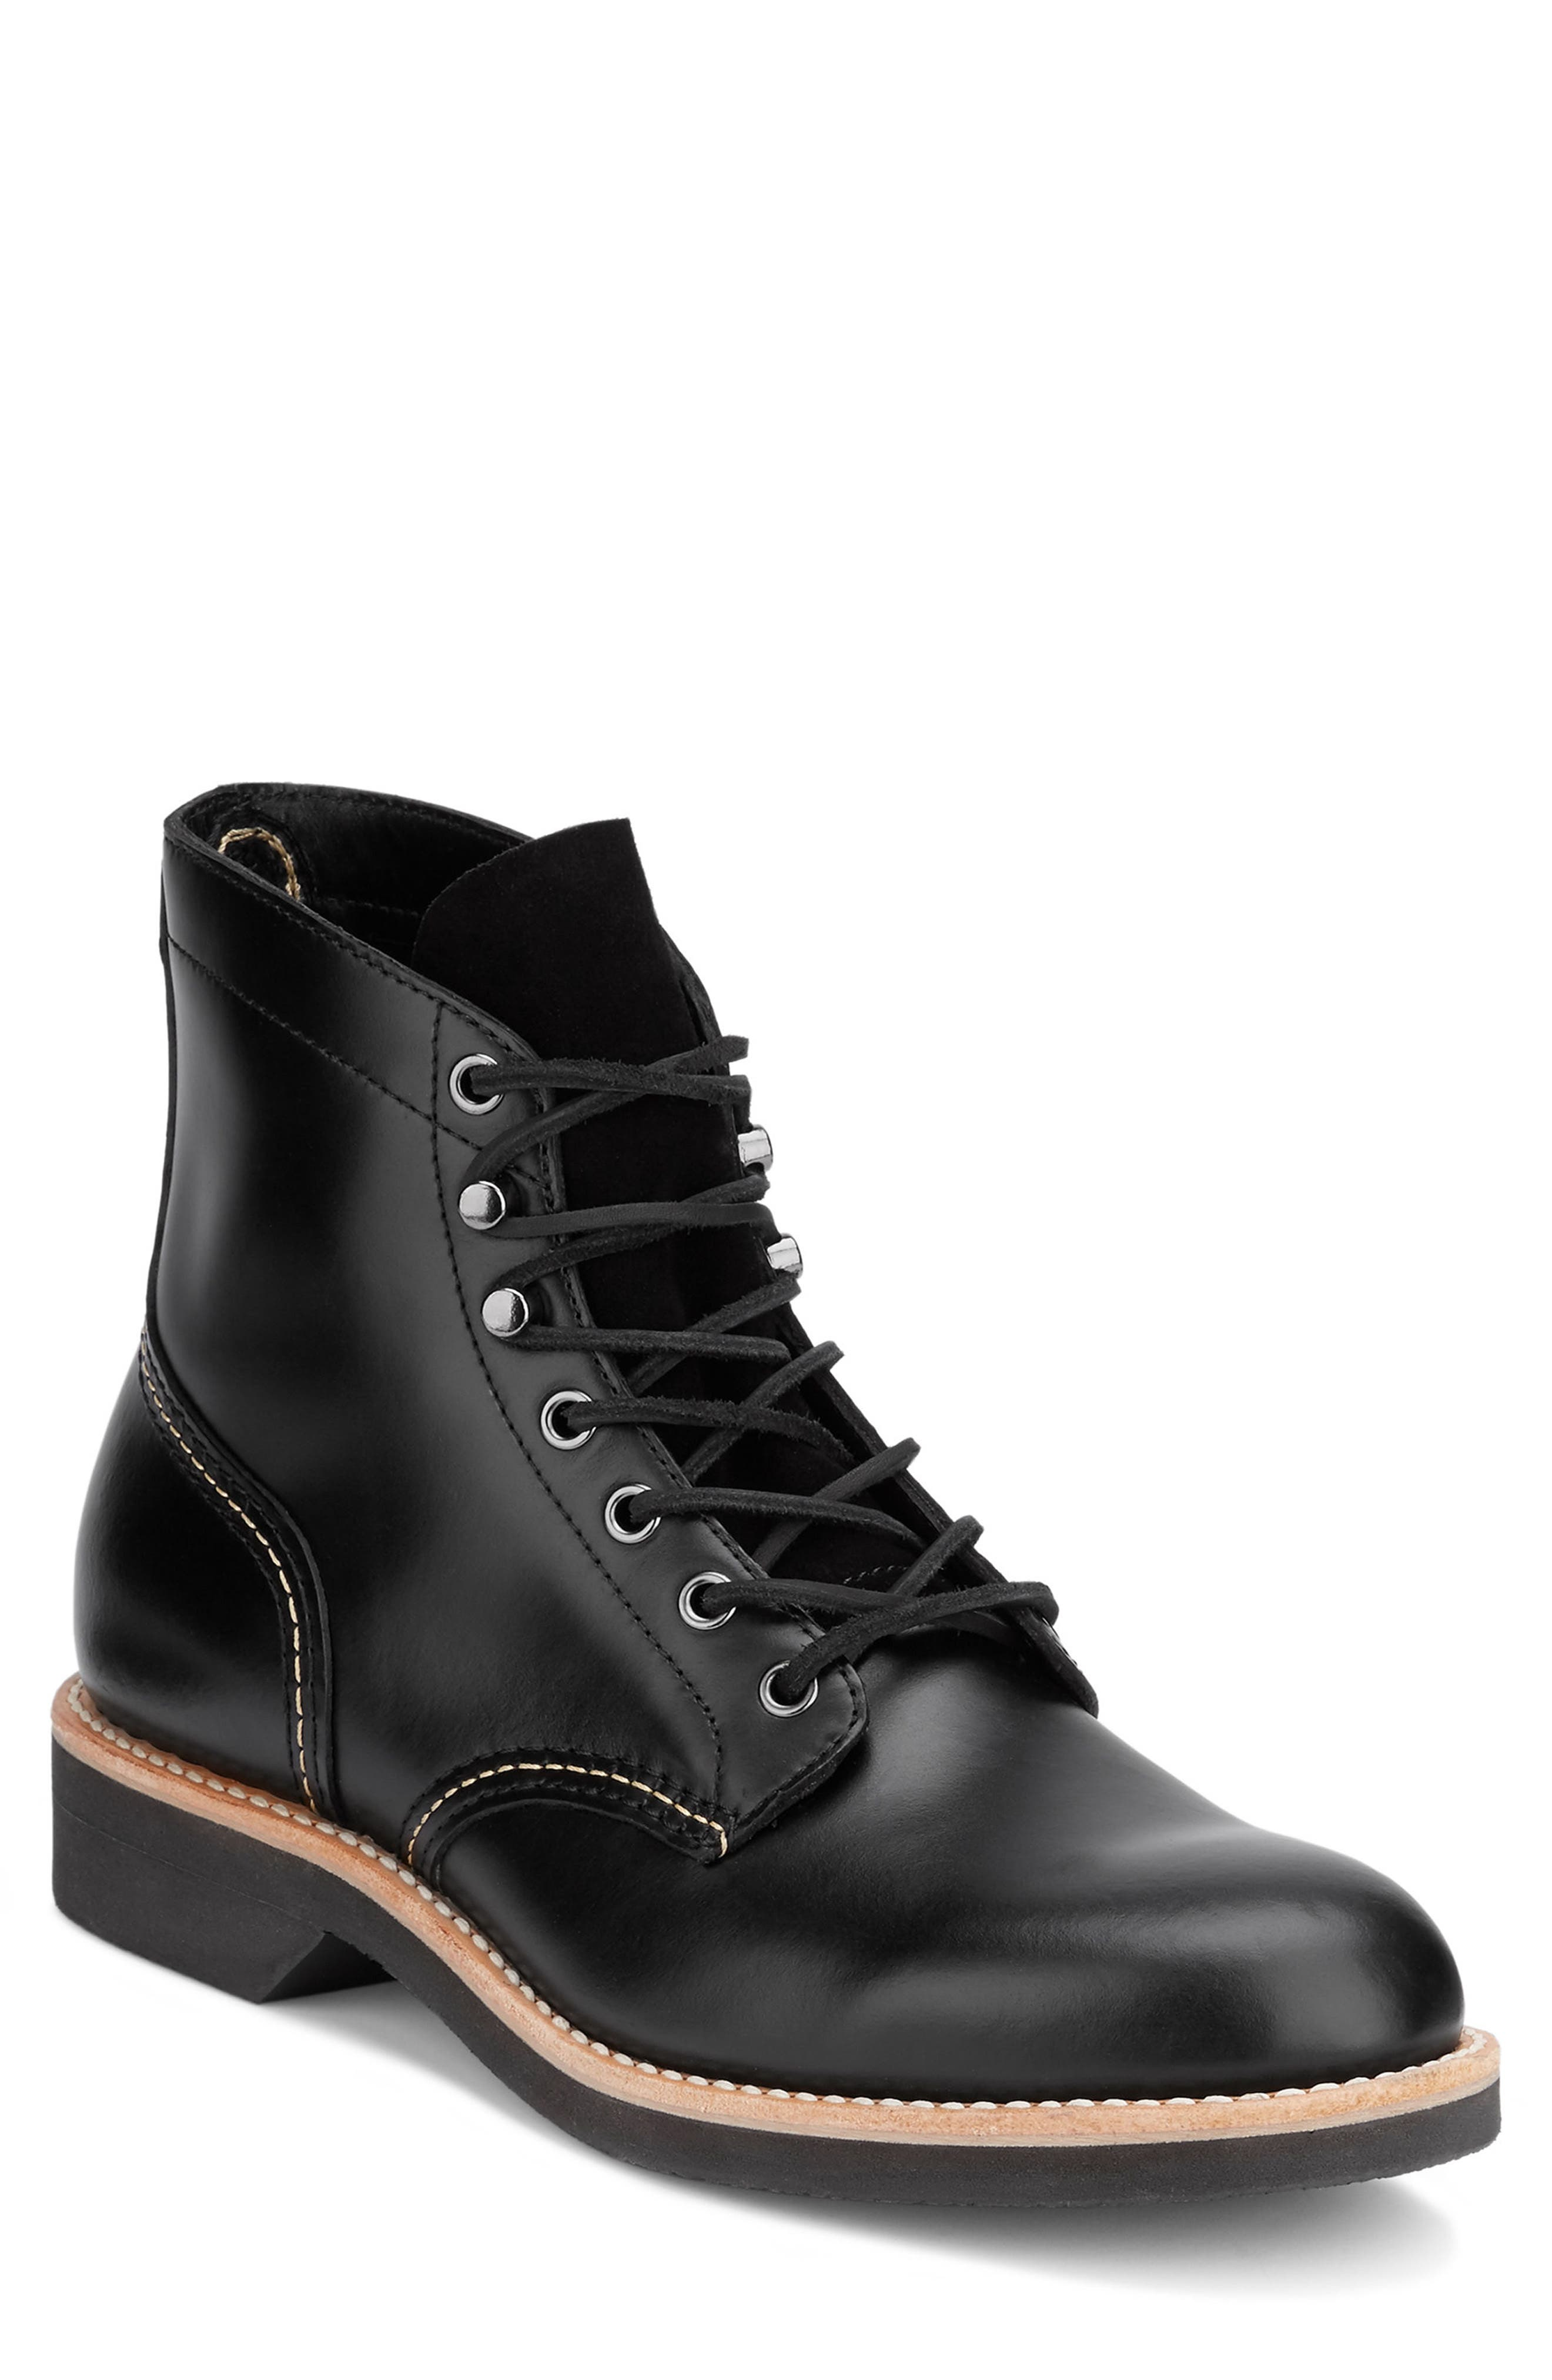 Reid Plain Toe Boot,                         Main,                         color,